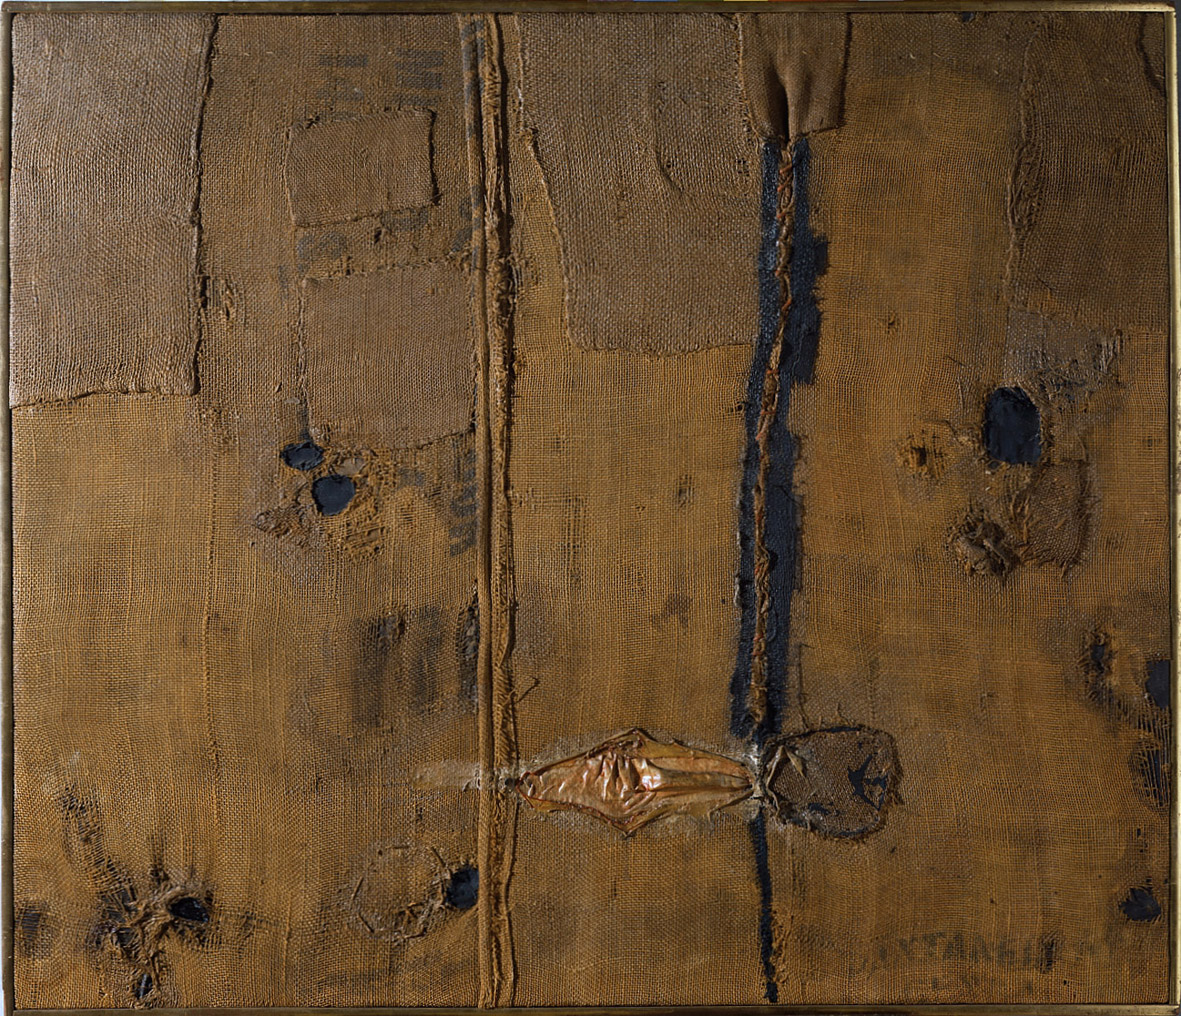 Alberto Burri, Abstraction with brown burlap (Sacco) (1953; olio, vernici, applicazioni in seta su iuta, 85,7 x 100 cm; Torino, GAM - Galleria Civica d'Arte Moderna e Contemporanea)